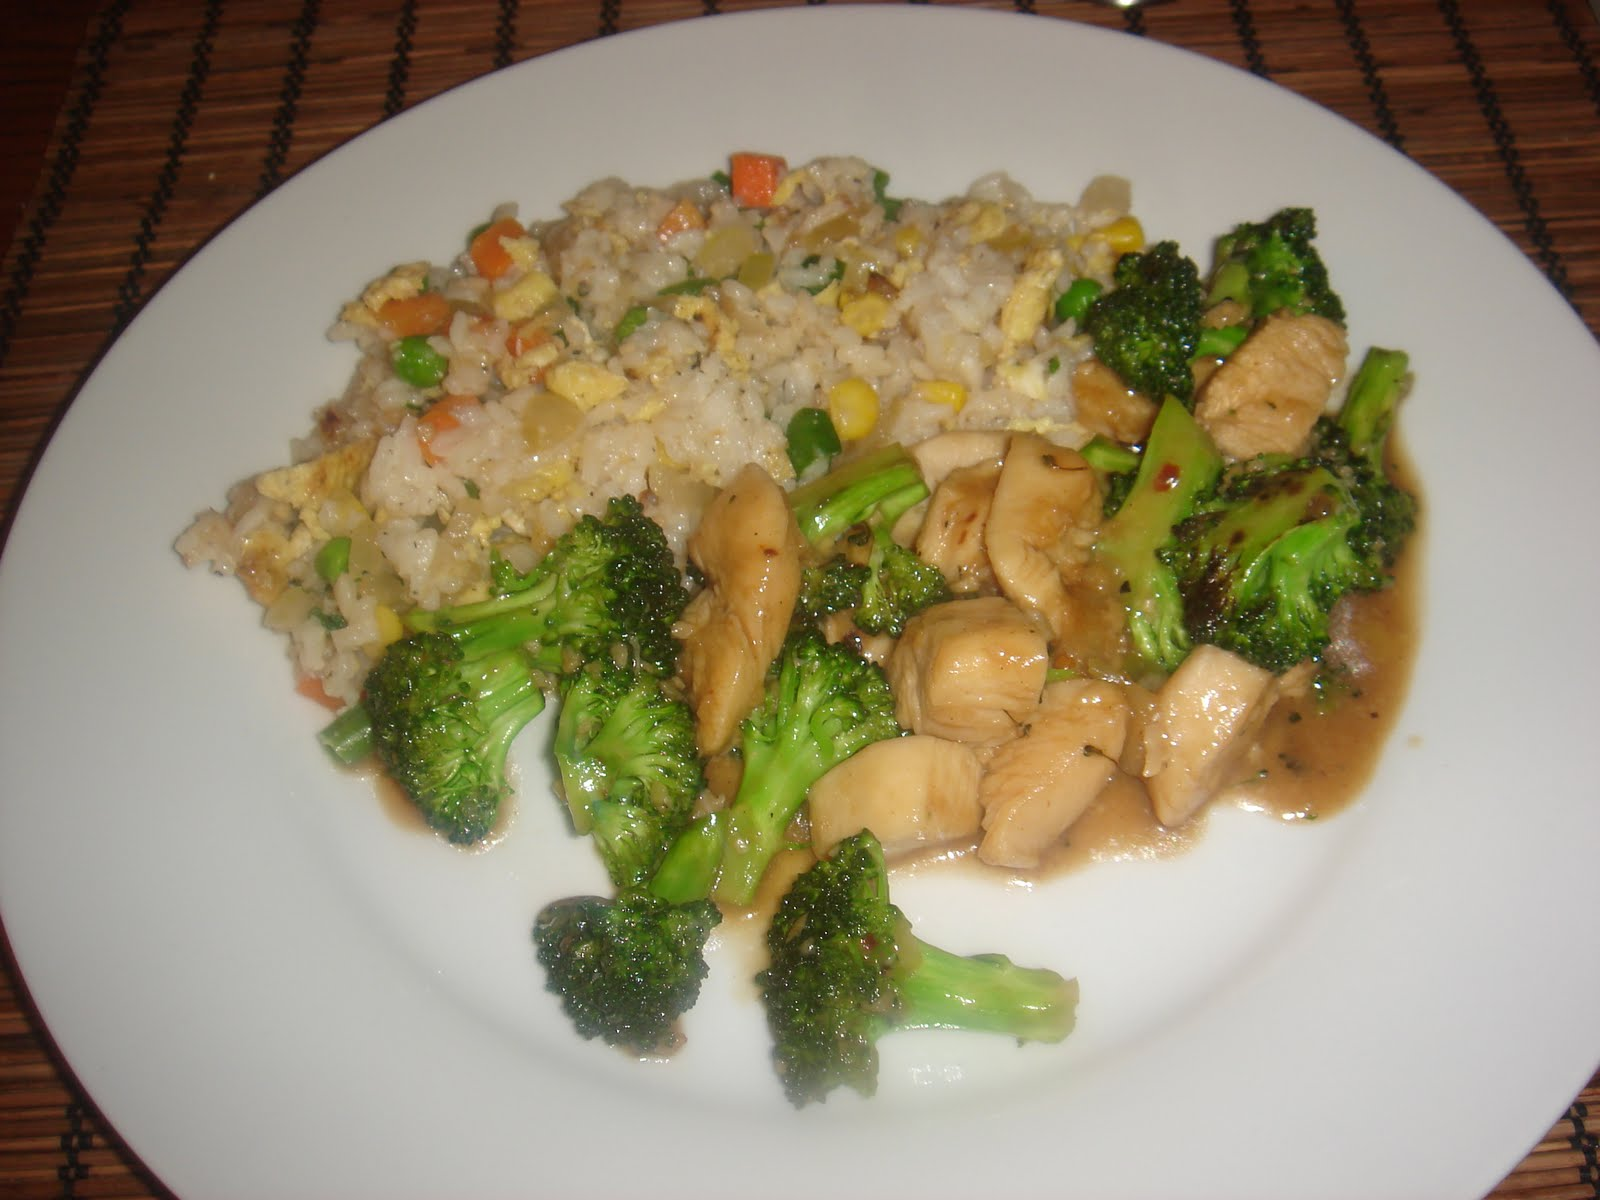 The New Chef's Journal: Chinese chicken and broccoli